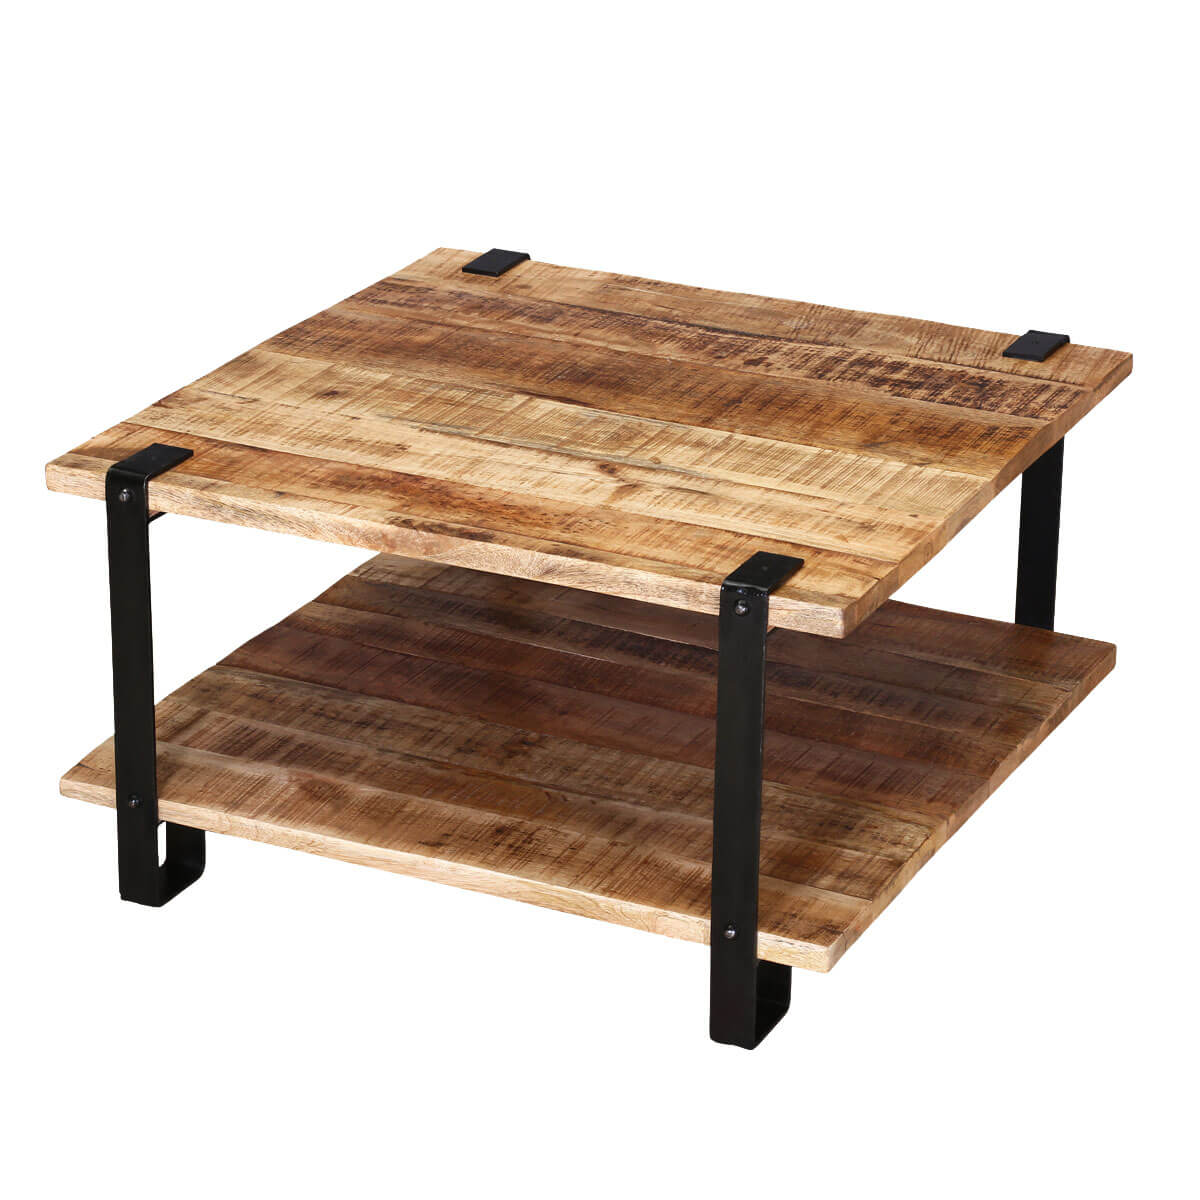 Industrial Coffee Table Images: Roxborough Rustic Industrial Square Coffee Table With Saw